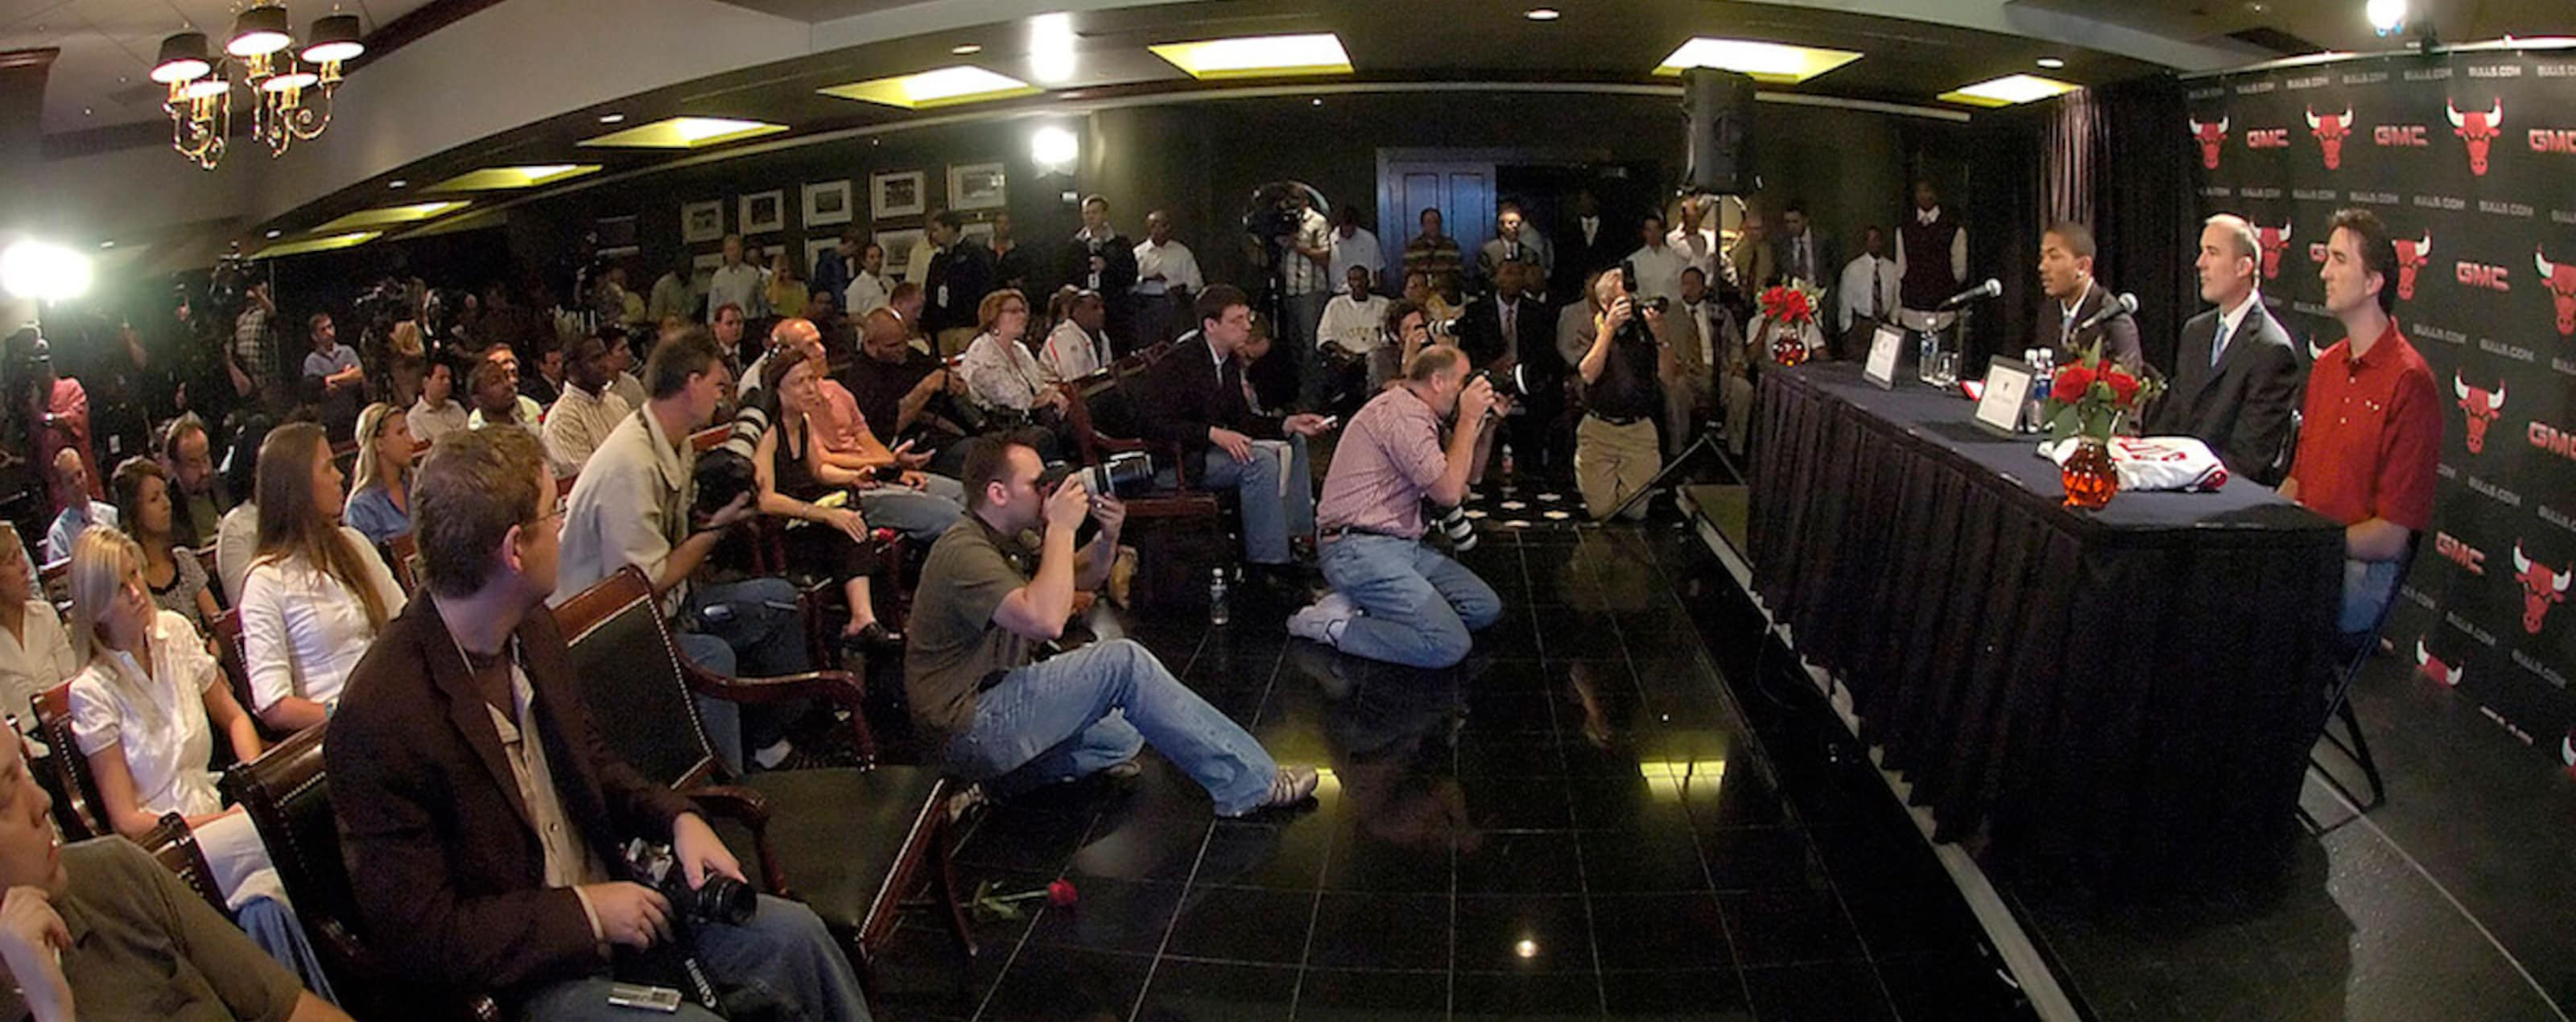 A wide angle view of the Chicago Bulls press conference to introduce Derrick Rose, the 2008 NBA Draft top pick and the team's first round draft pick to the media at the United Center June 30, 2008 in Chicago, Illinois.